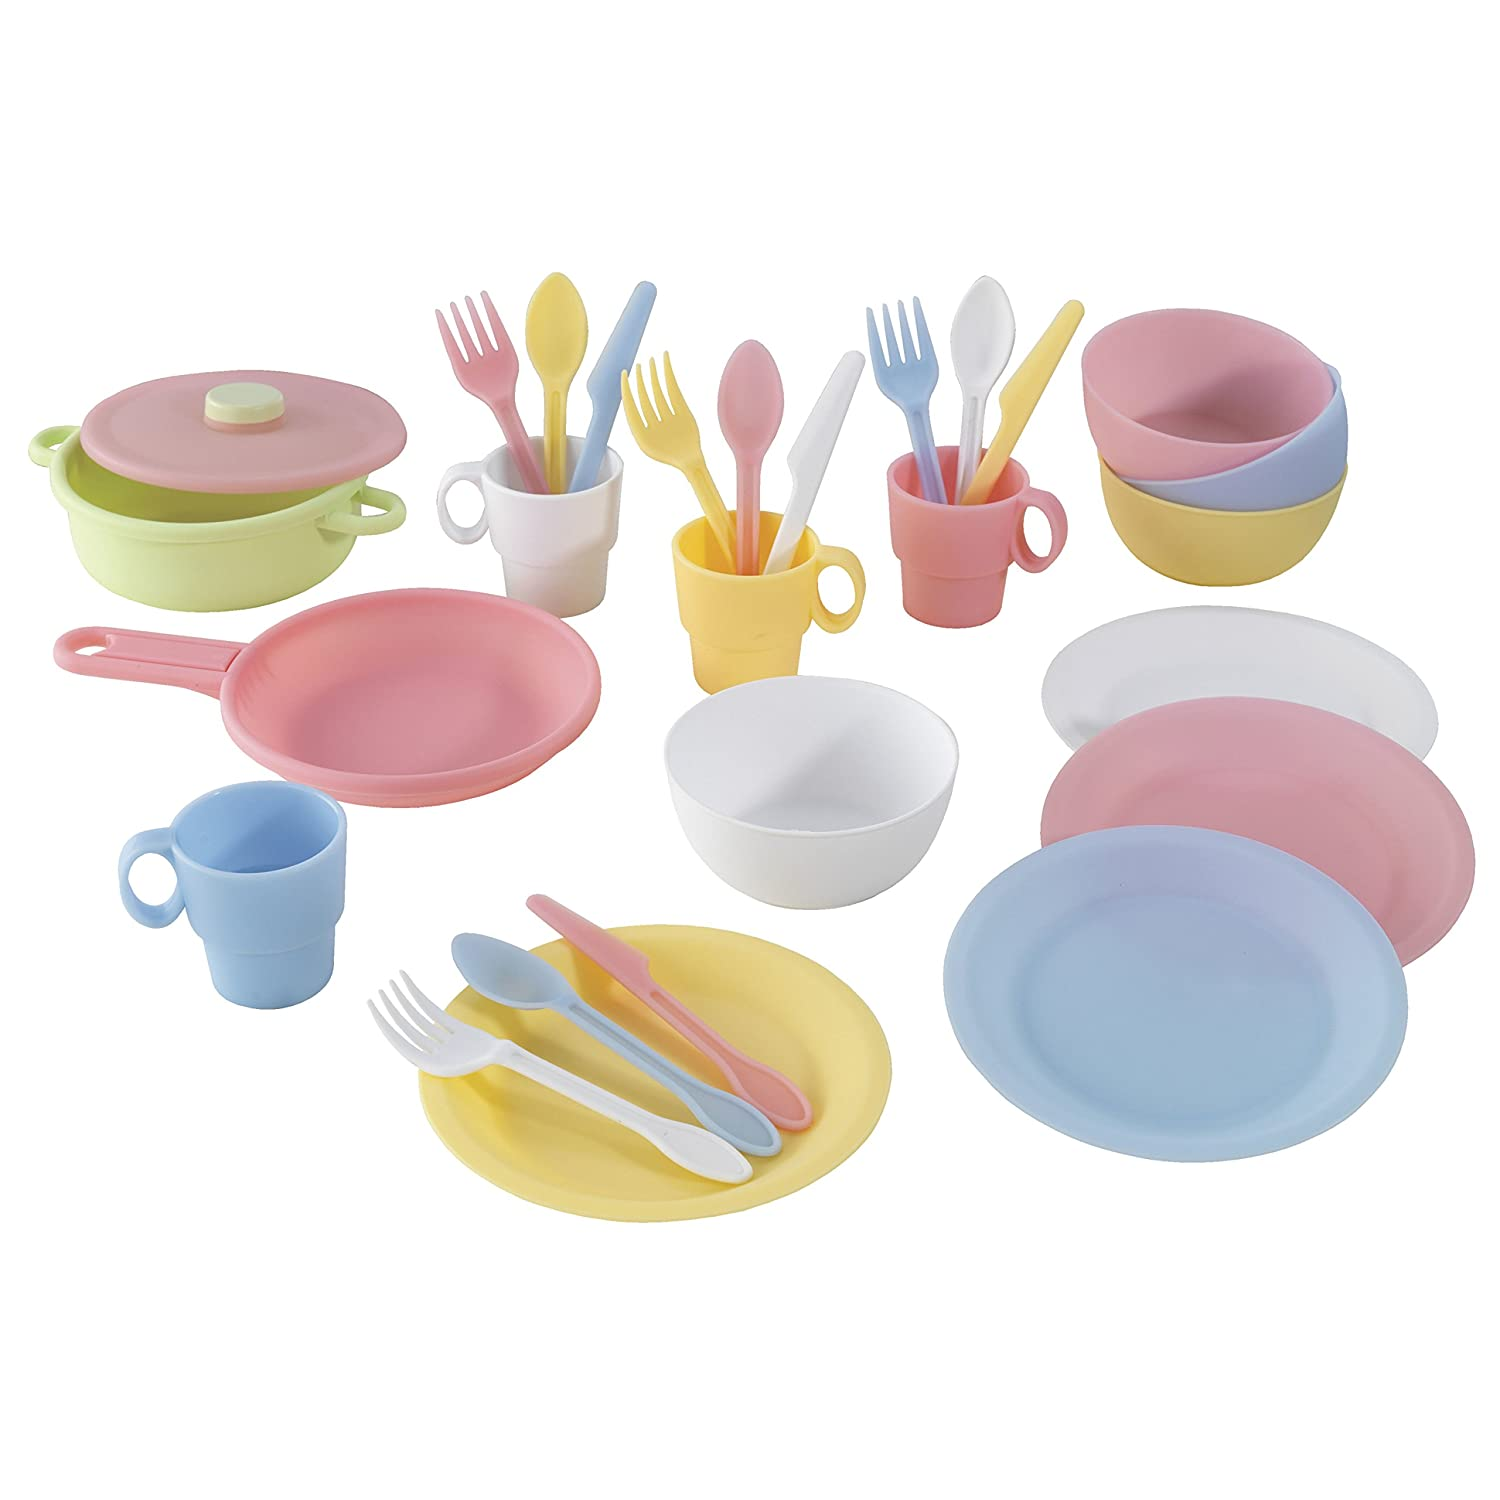 Kidkraft 63027 27 Piece Pastel Cookware Pretend Toy Food Playset Cooking Eating Utensils And Accessories Set For Kids Play Kitchen